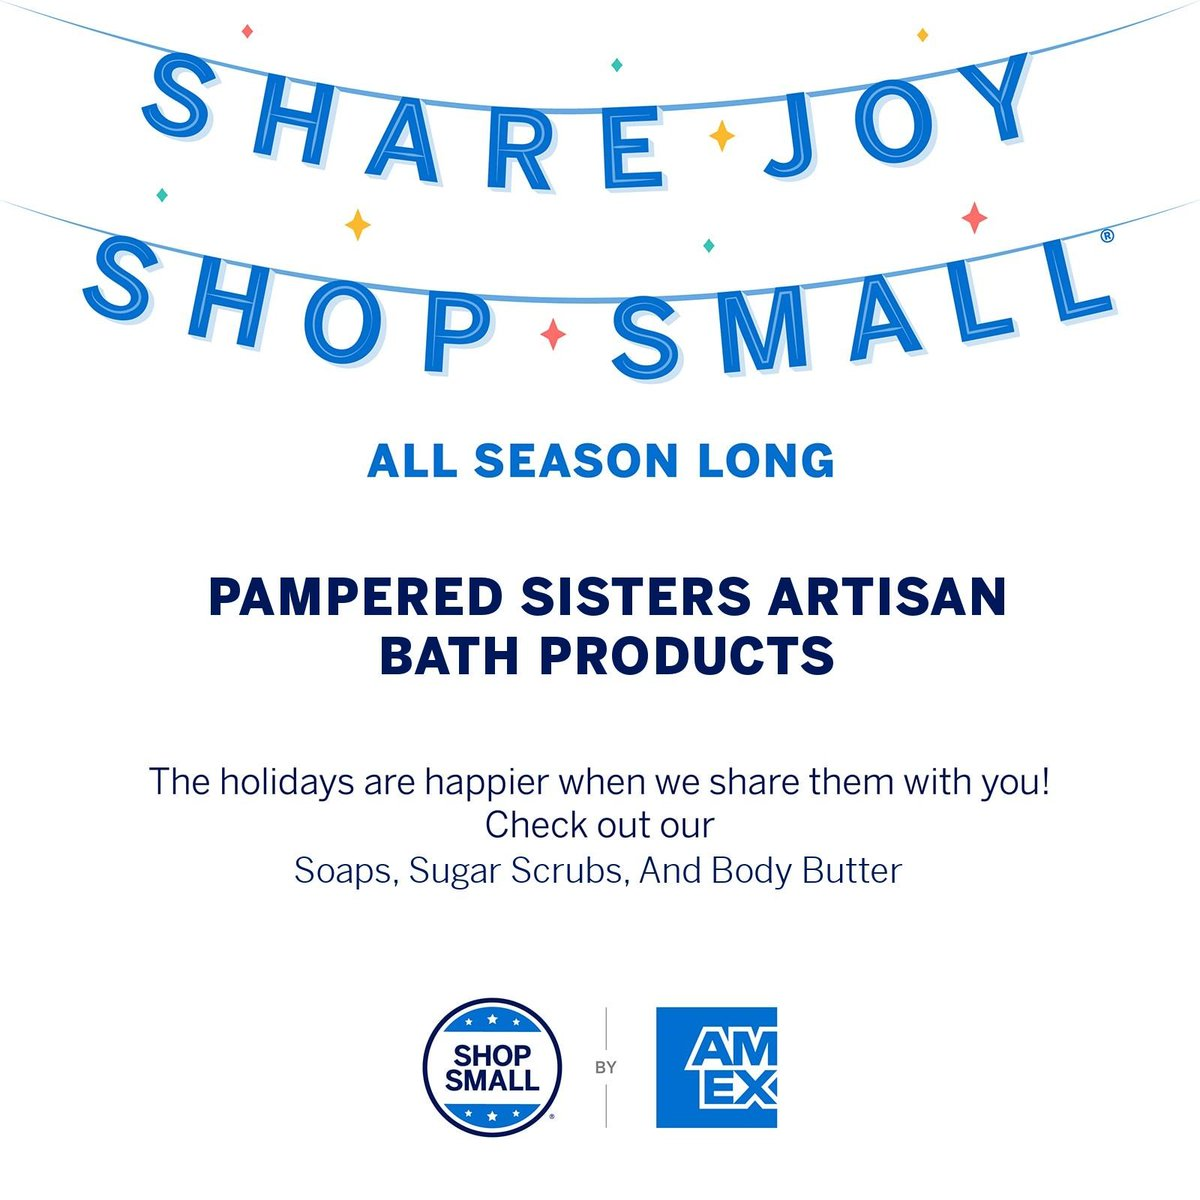 Don't forget last minute stocking stuffers @PamperedSisters  #shopsmall #blackownedbusiness #pamperedsisters #cowgirlchristmas #skincareroutine